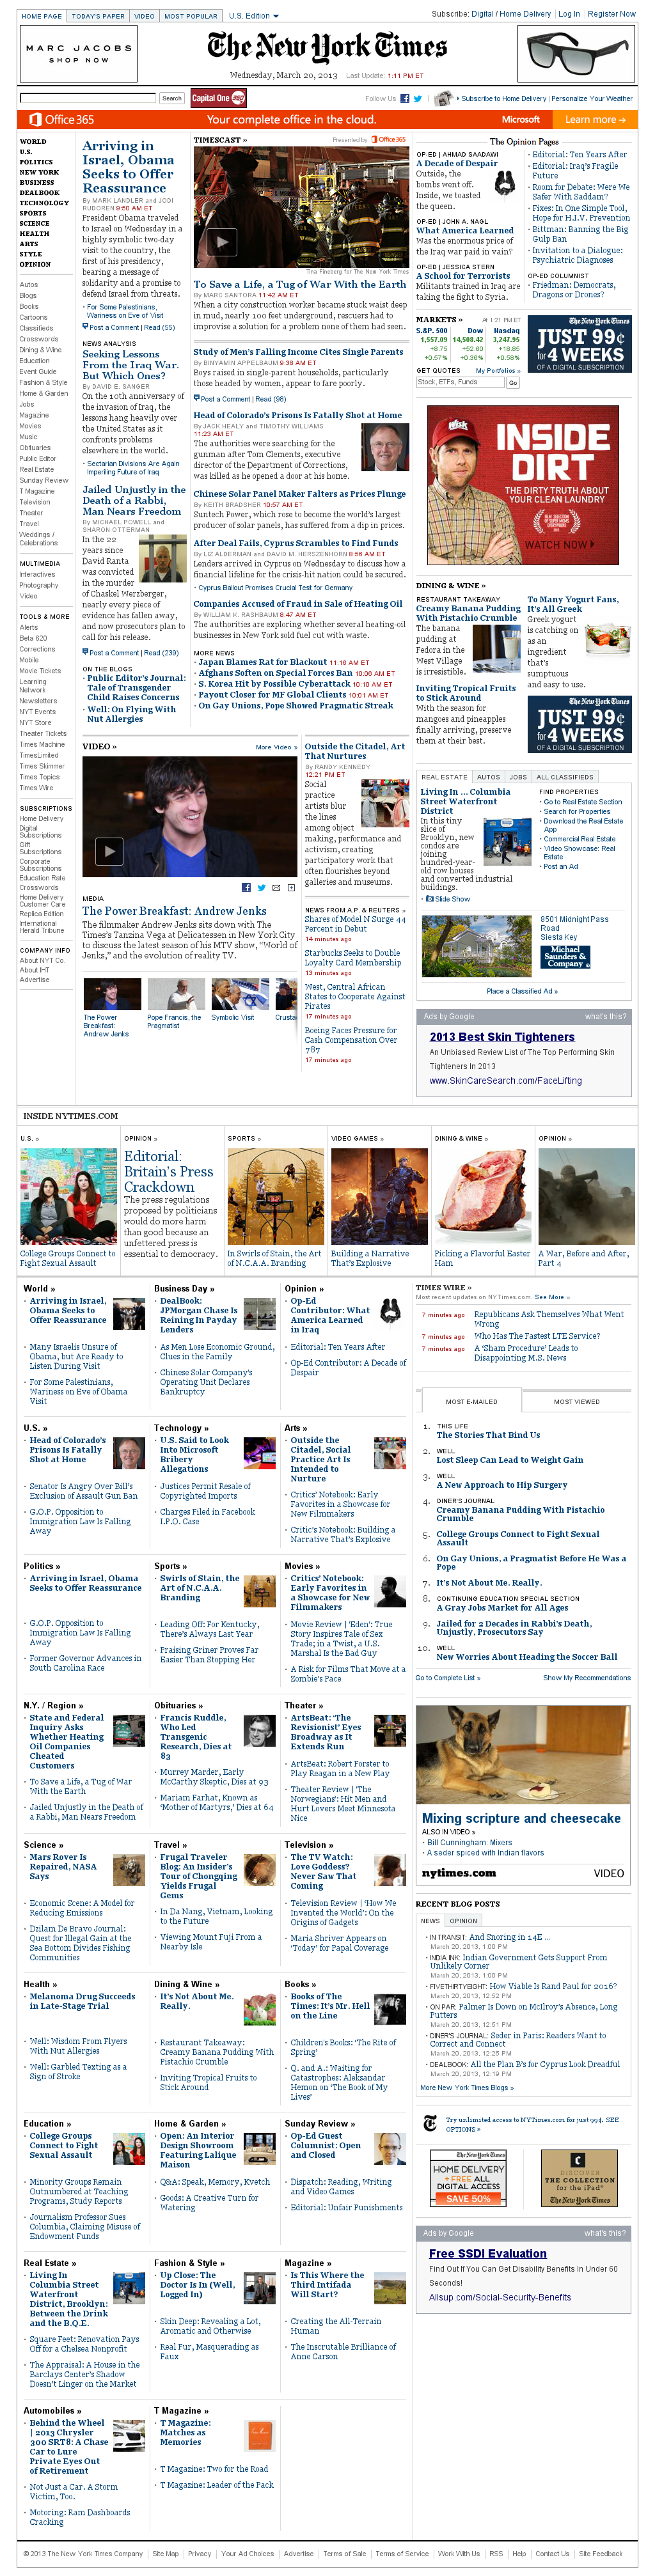 The New York Times at Wednesday March 20, 2013, 5:21 p.m. UTC